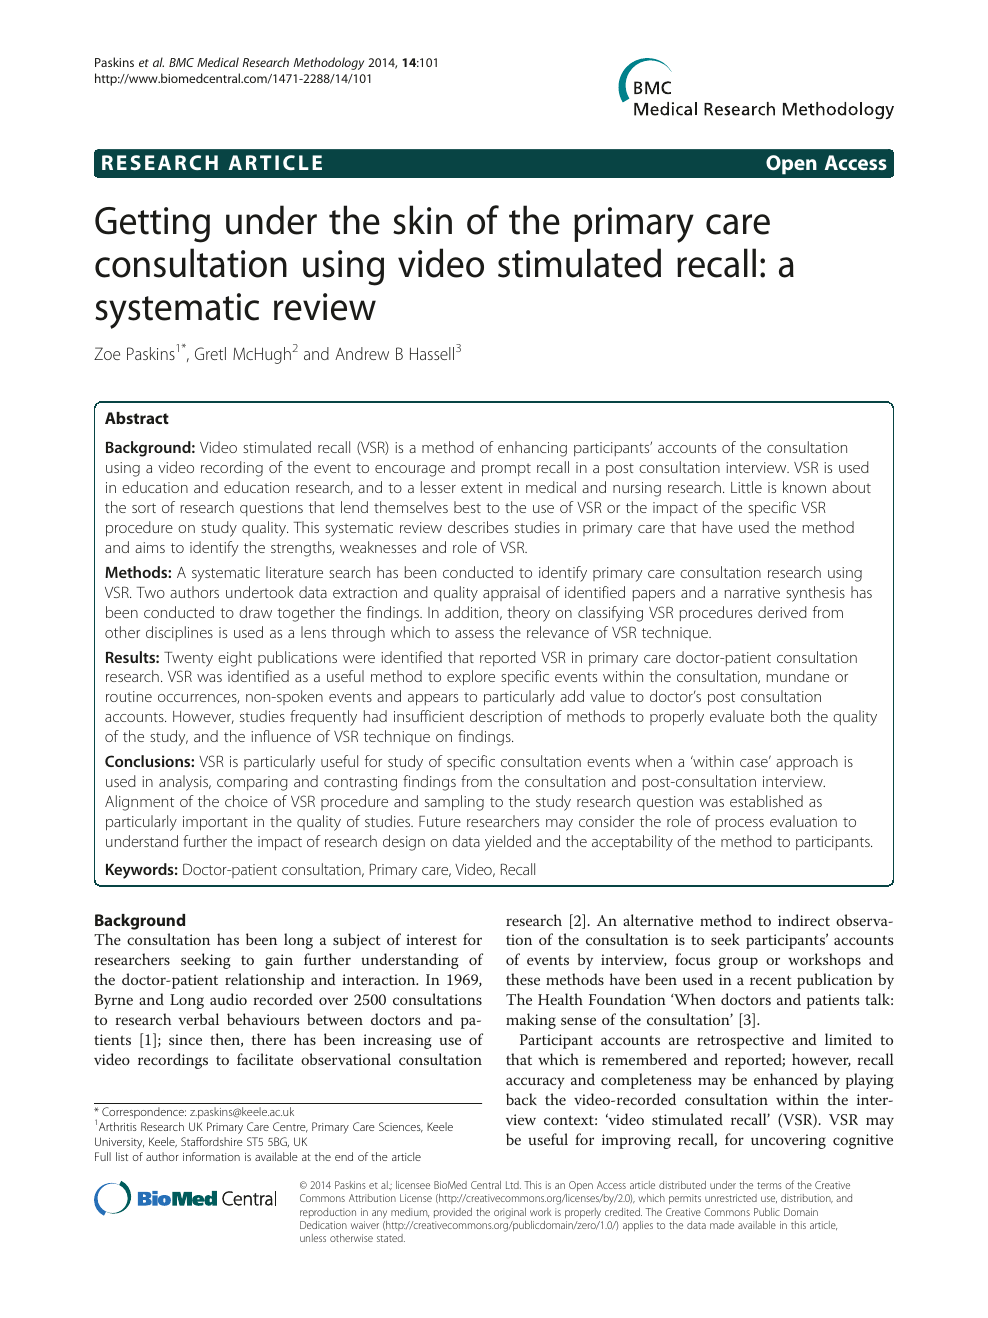 Getting under the skin of the primary care consultation